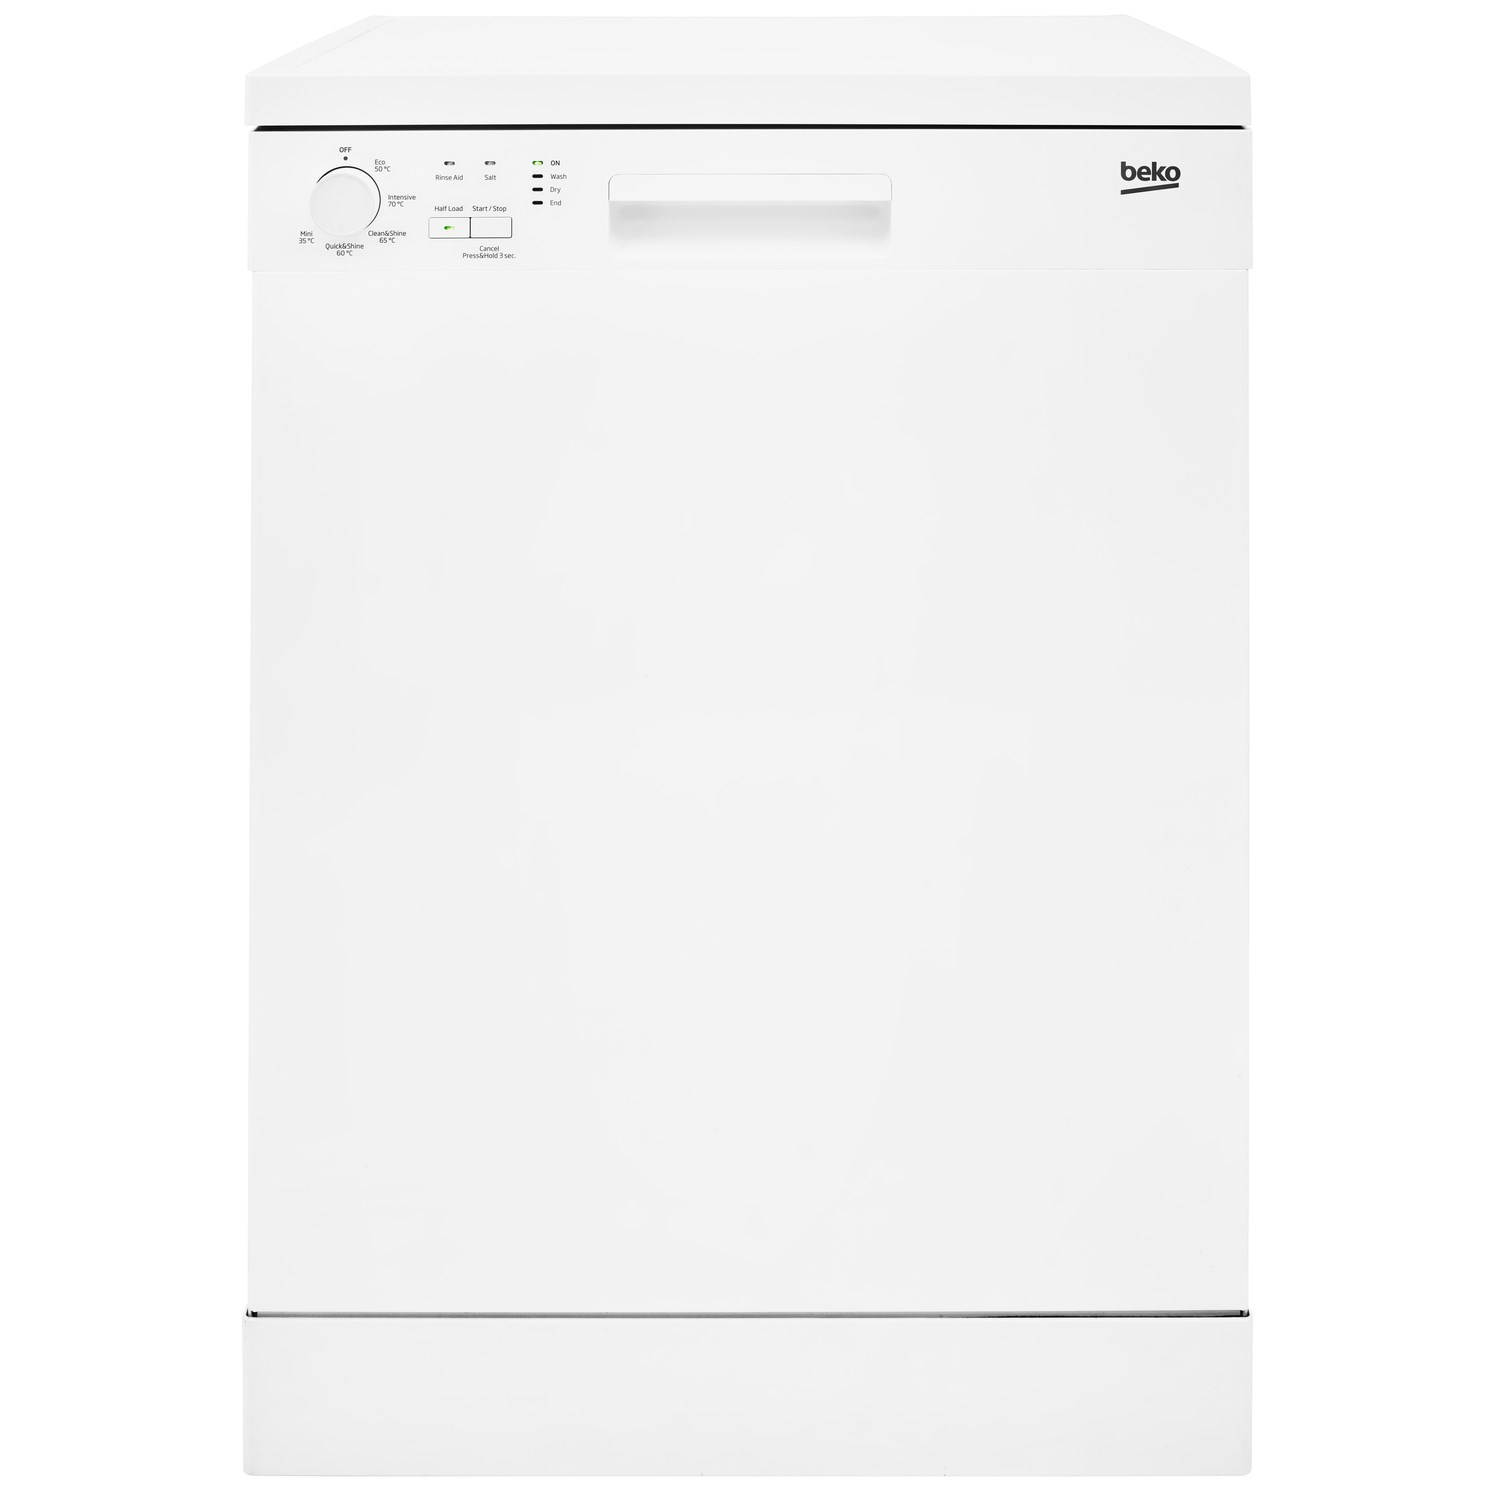 Dishwasher photo and guides: Beko Dishwasher Manual Dfn16420w